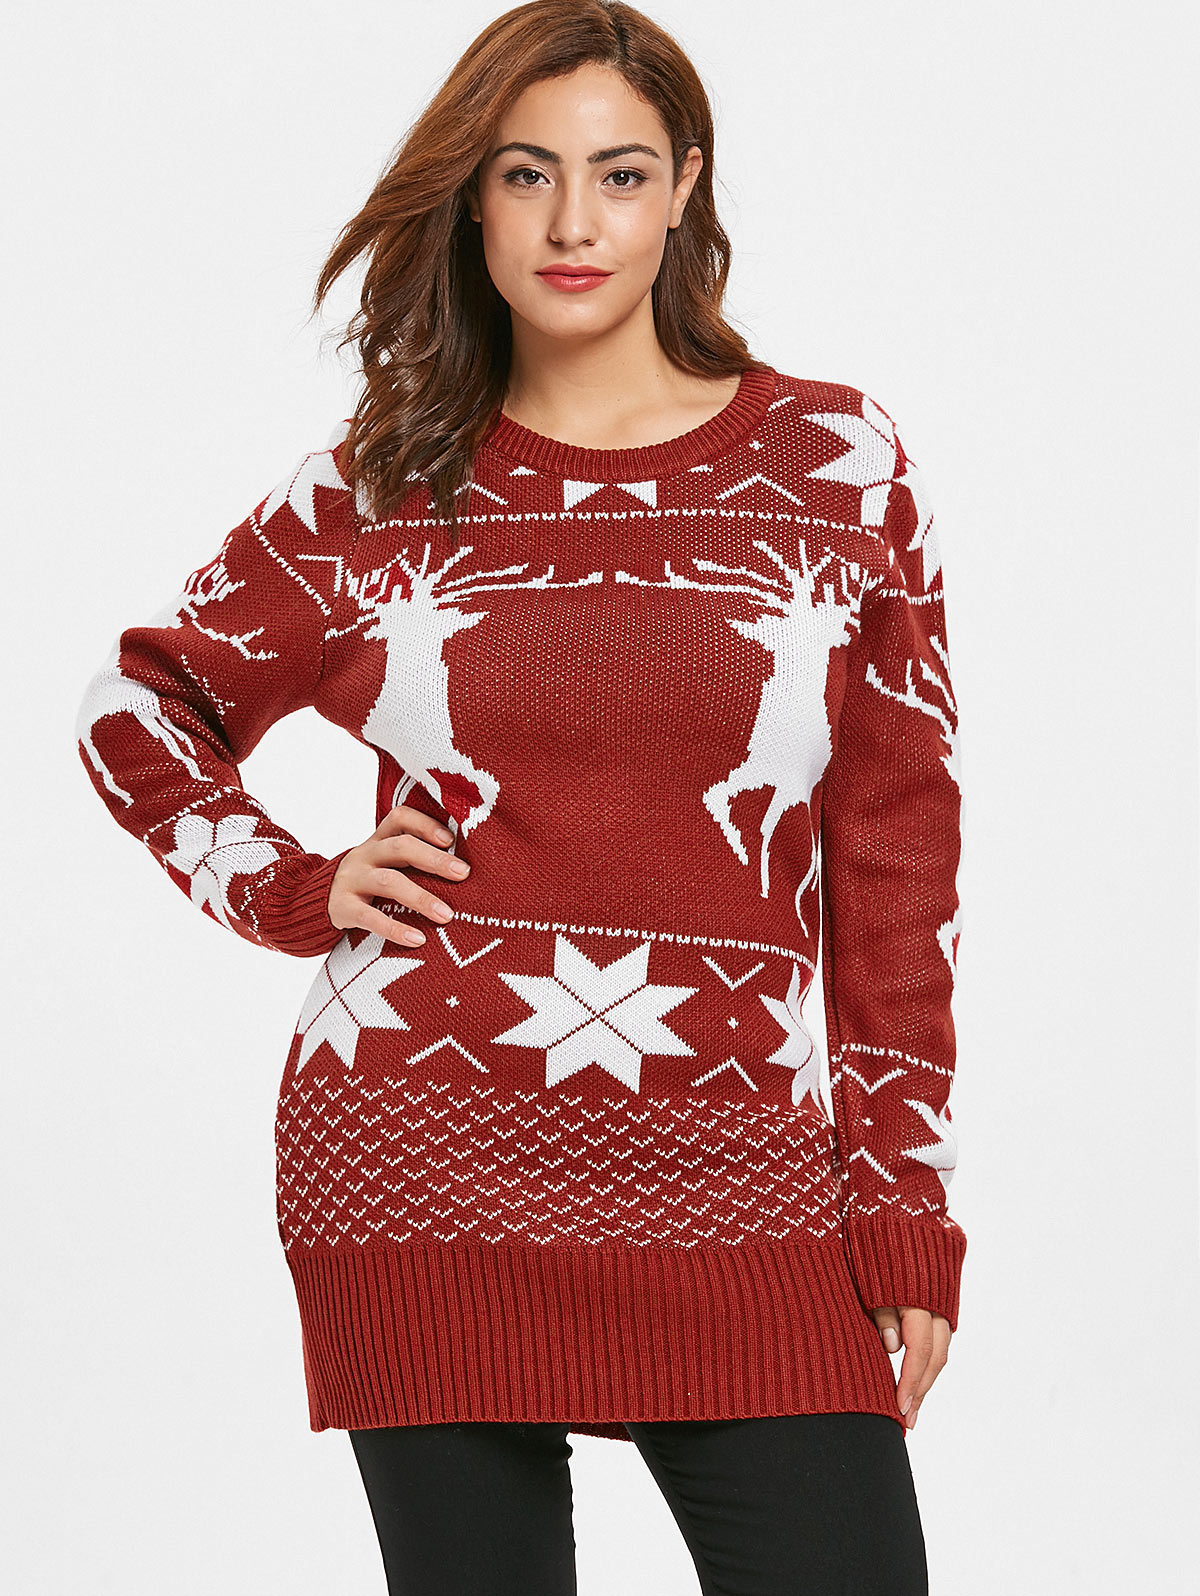 Plus Size Ugly Christmas Sweater.Us 17 59 48 Off Wipalo Women Fashion Plus Size Reindeer Ugly Christmas Sweater Ladies Casual O Neck Long Sleeve Long Pullover Sweater Winter Top In